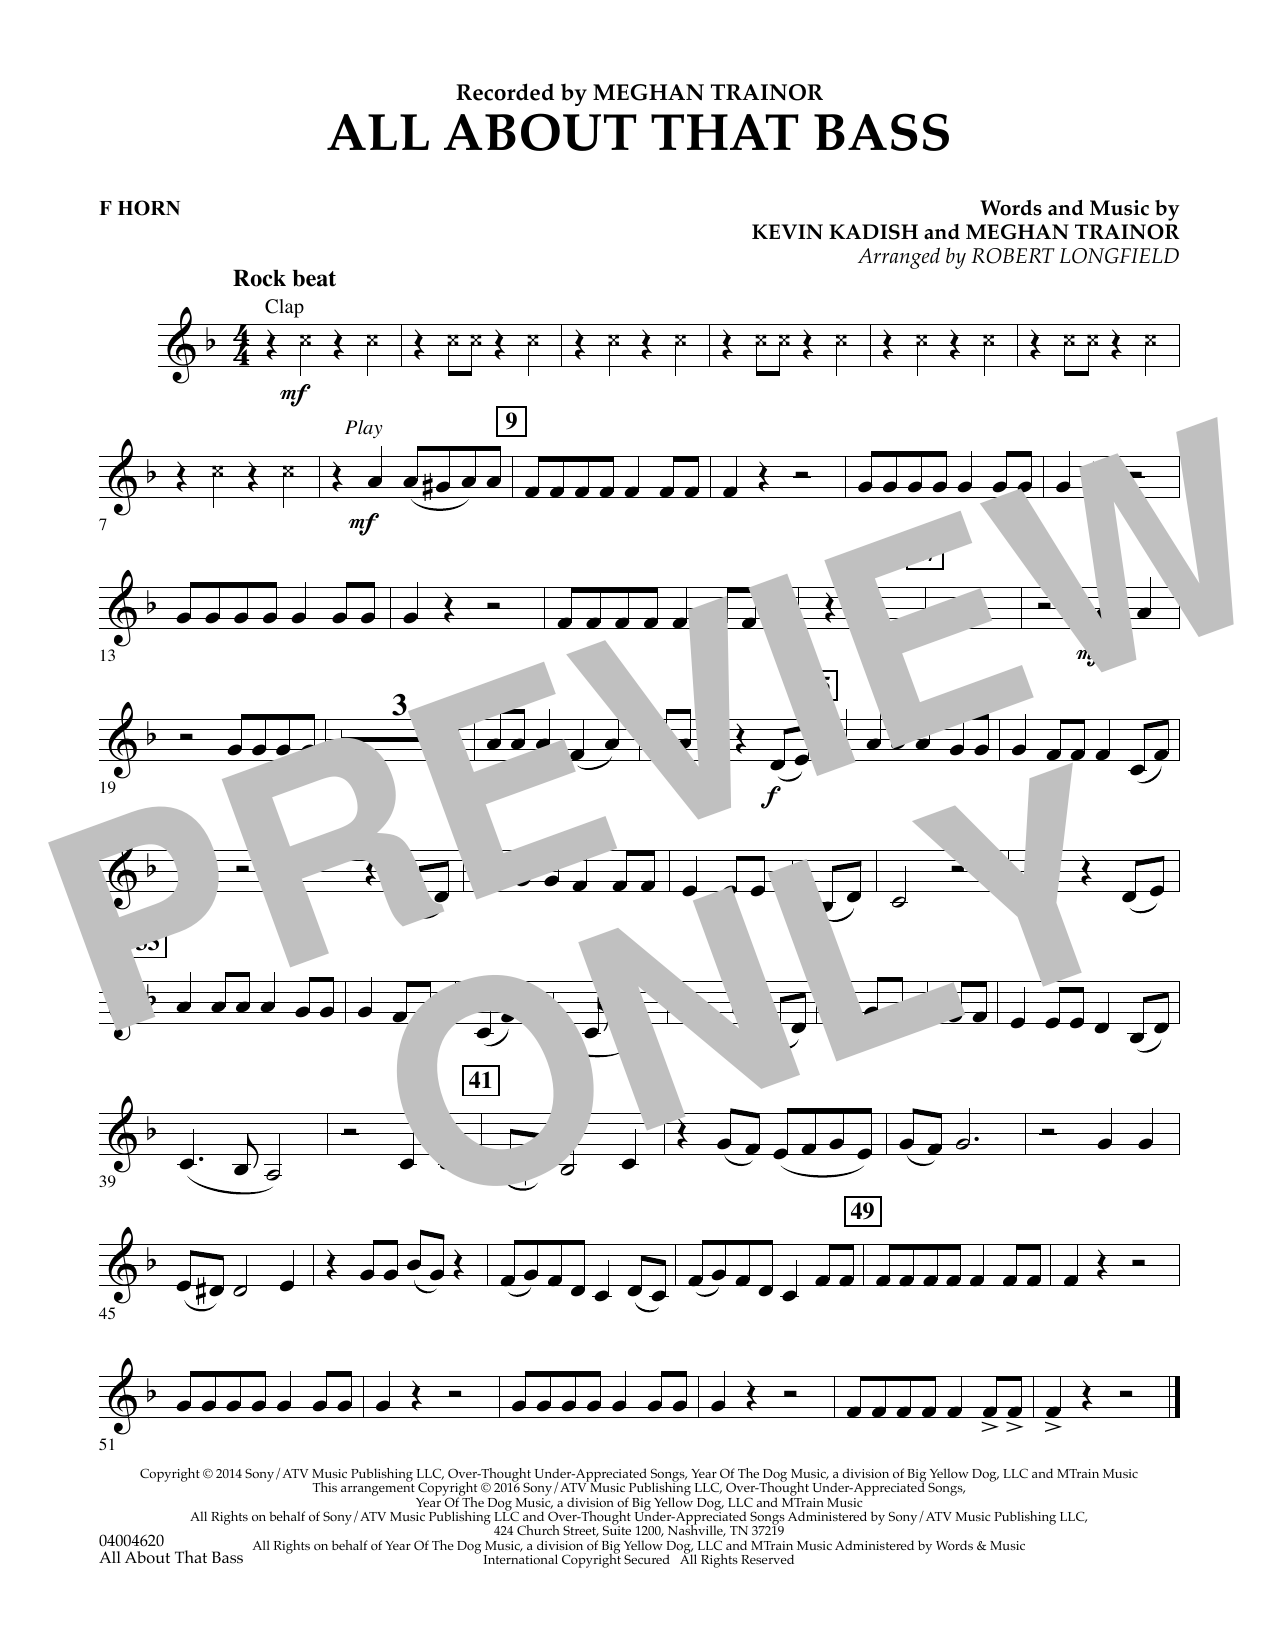 Robert Longfield All About That Bass - F Horn sheet music notes and chords. Download Printable PDF.